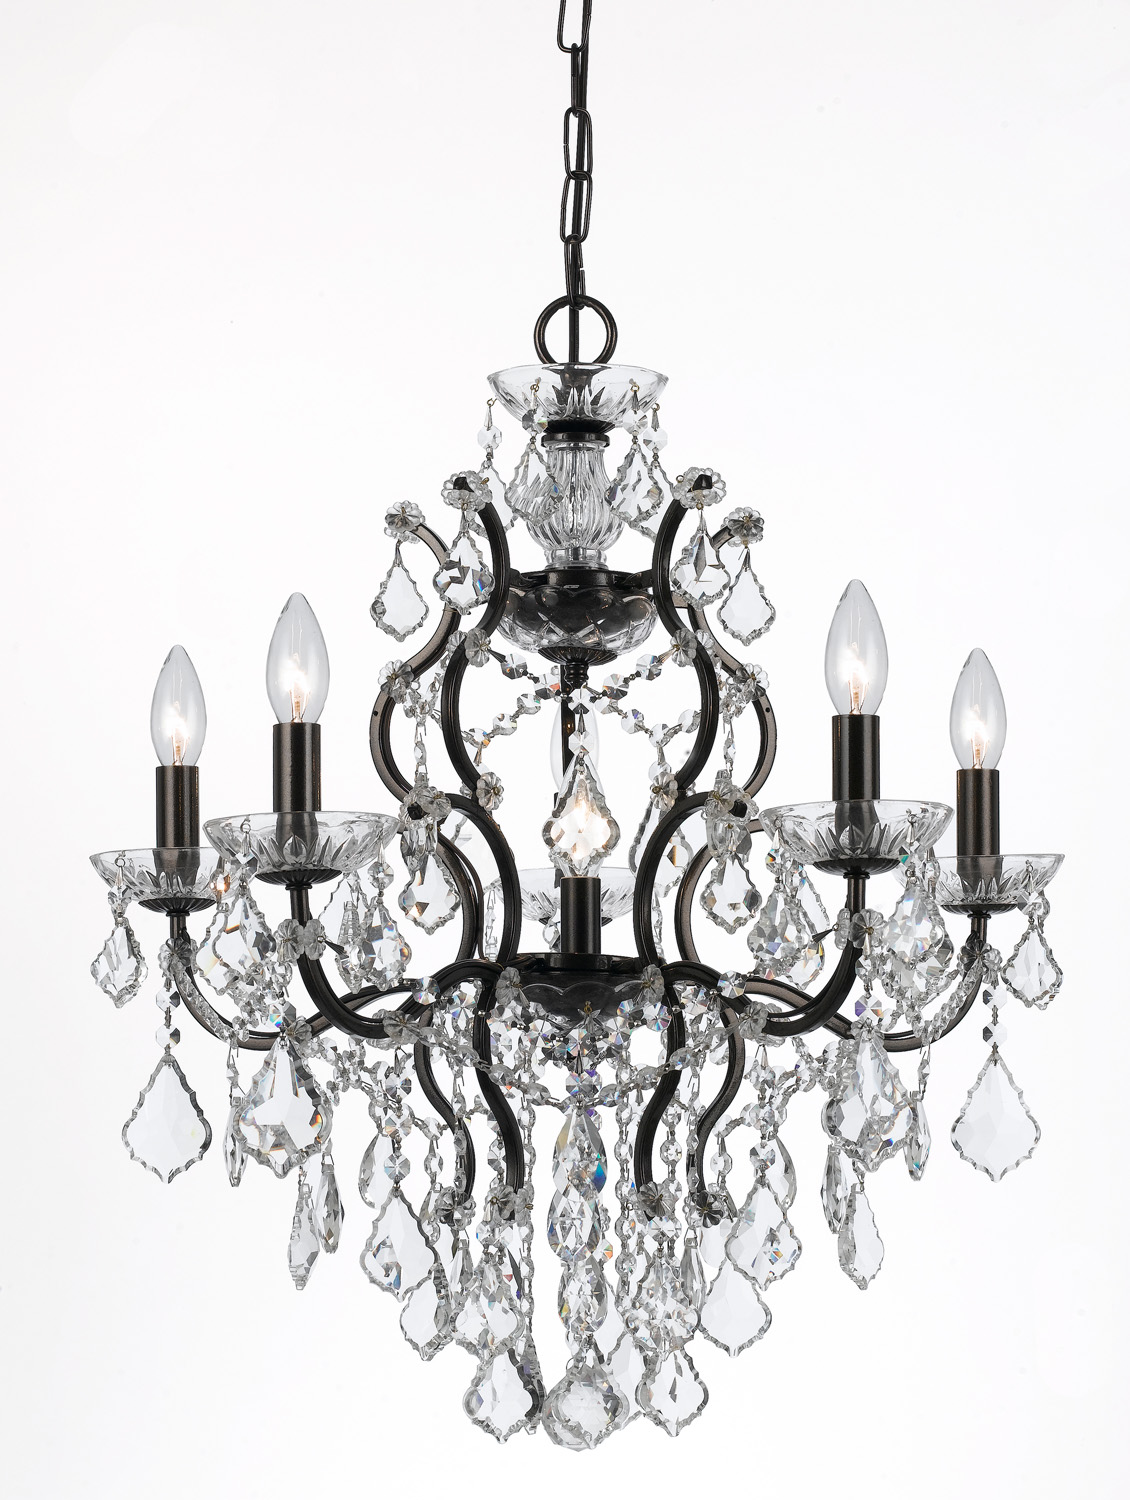 Crystorama 4455-VZ-CL-S Six Light Chandeliers by Crystorama